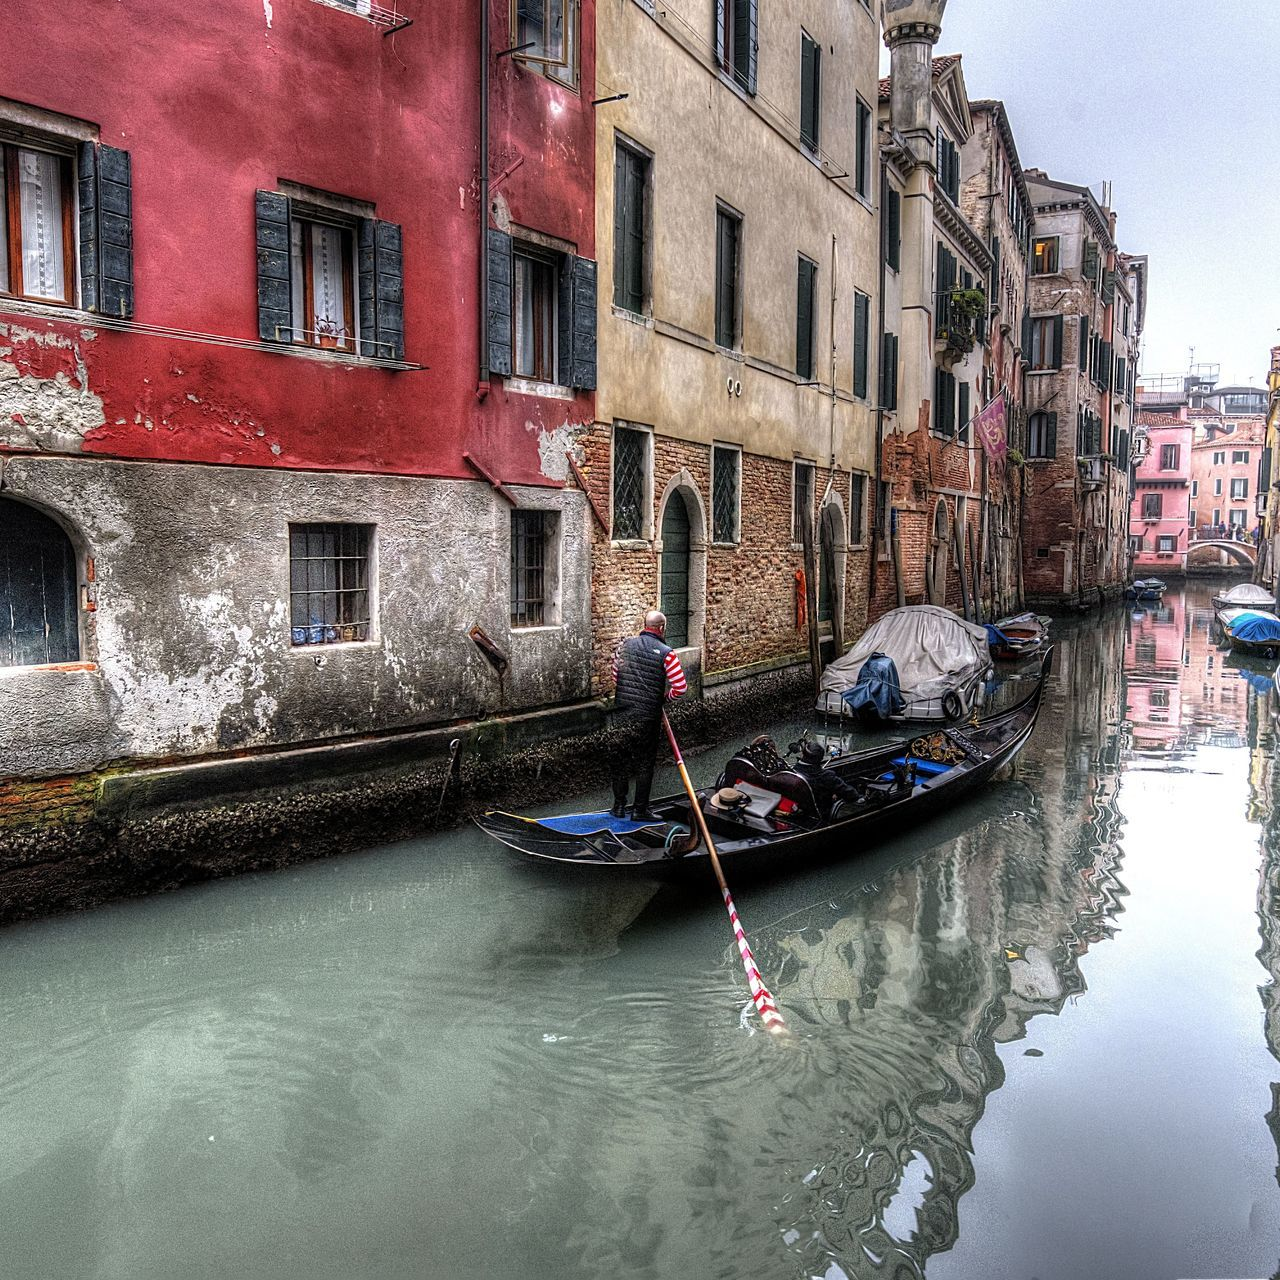 building exterior, architecture, built structure, canal, real people, nautical vessel, waterfront, transportation, mode of transport, day, window, water, outdoors, gondola, gondola - traditional boat, travel destinations, one person, moored, men, city, sky, people